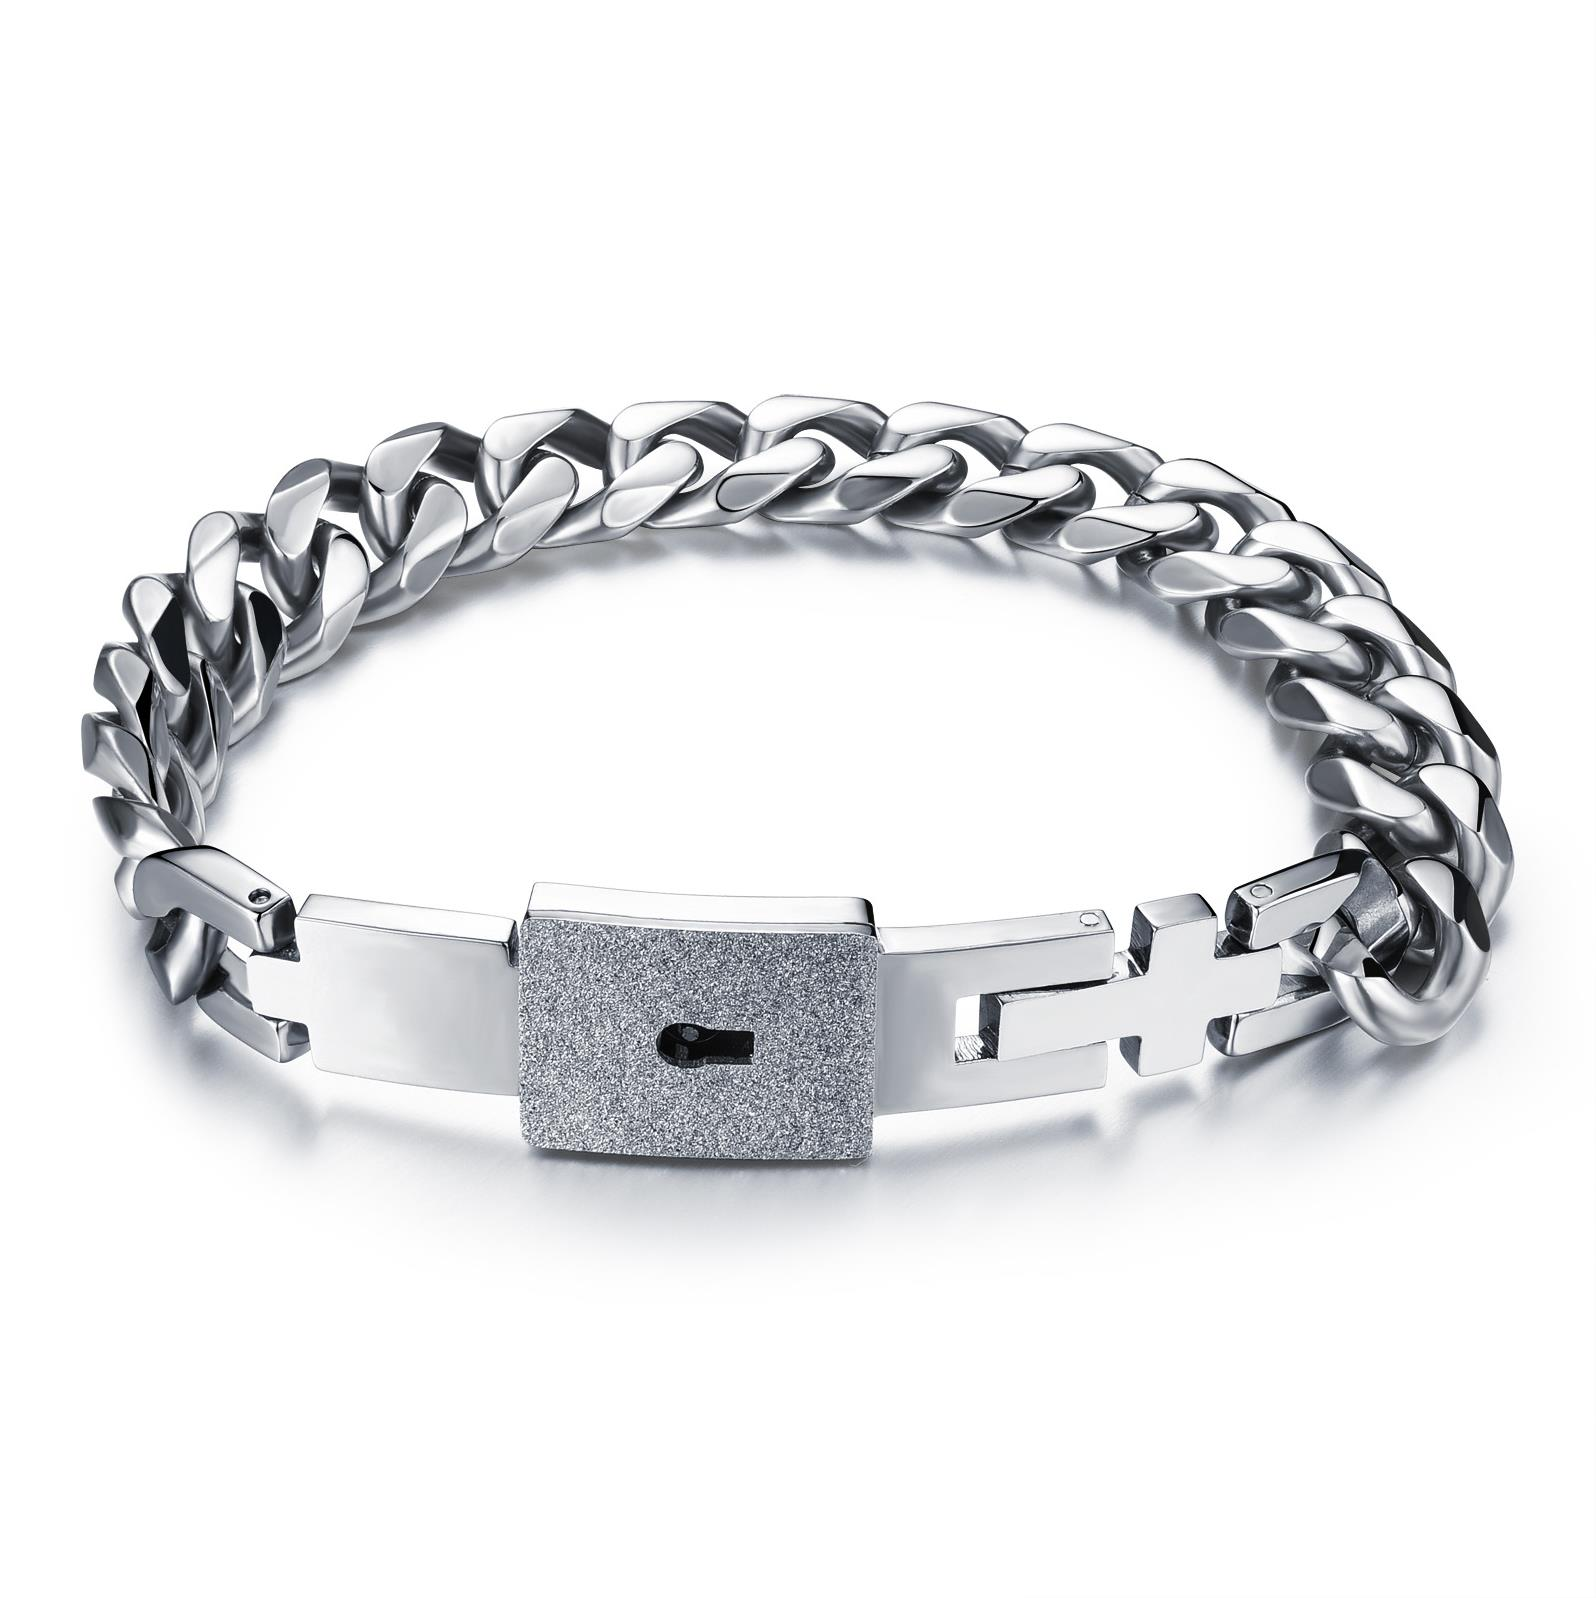 Concentric lock lovers bracelet necklace love key titanium steel pendant with diamond eternal ring female lock male gtz001